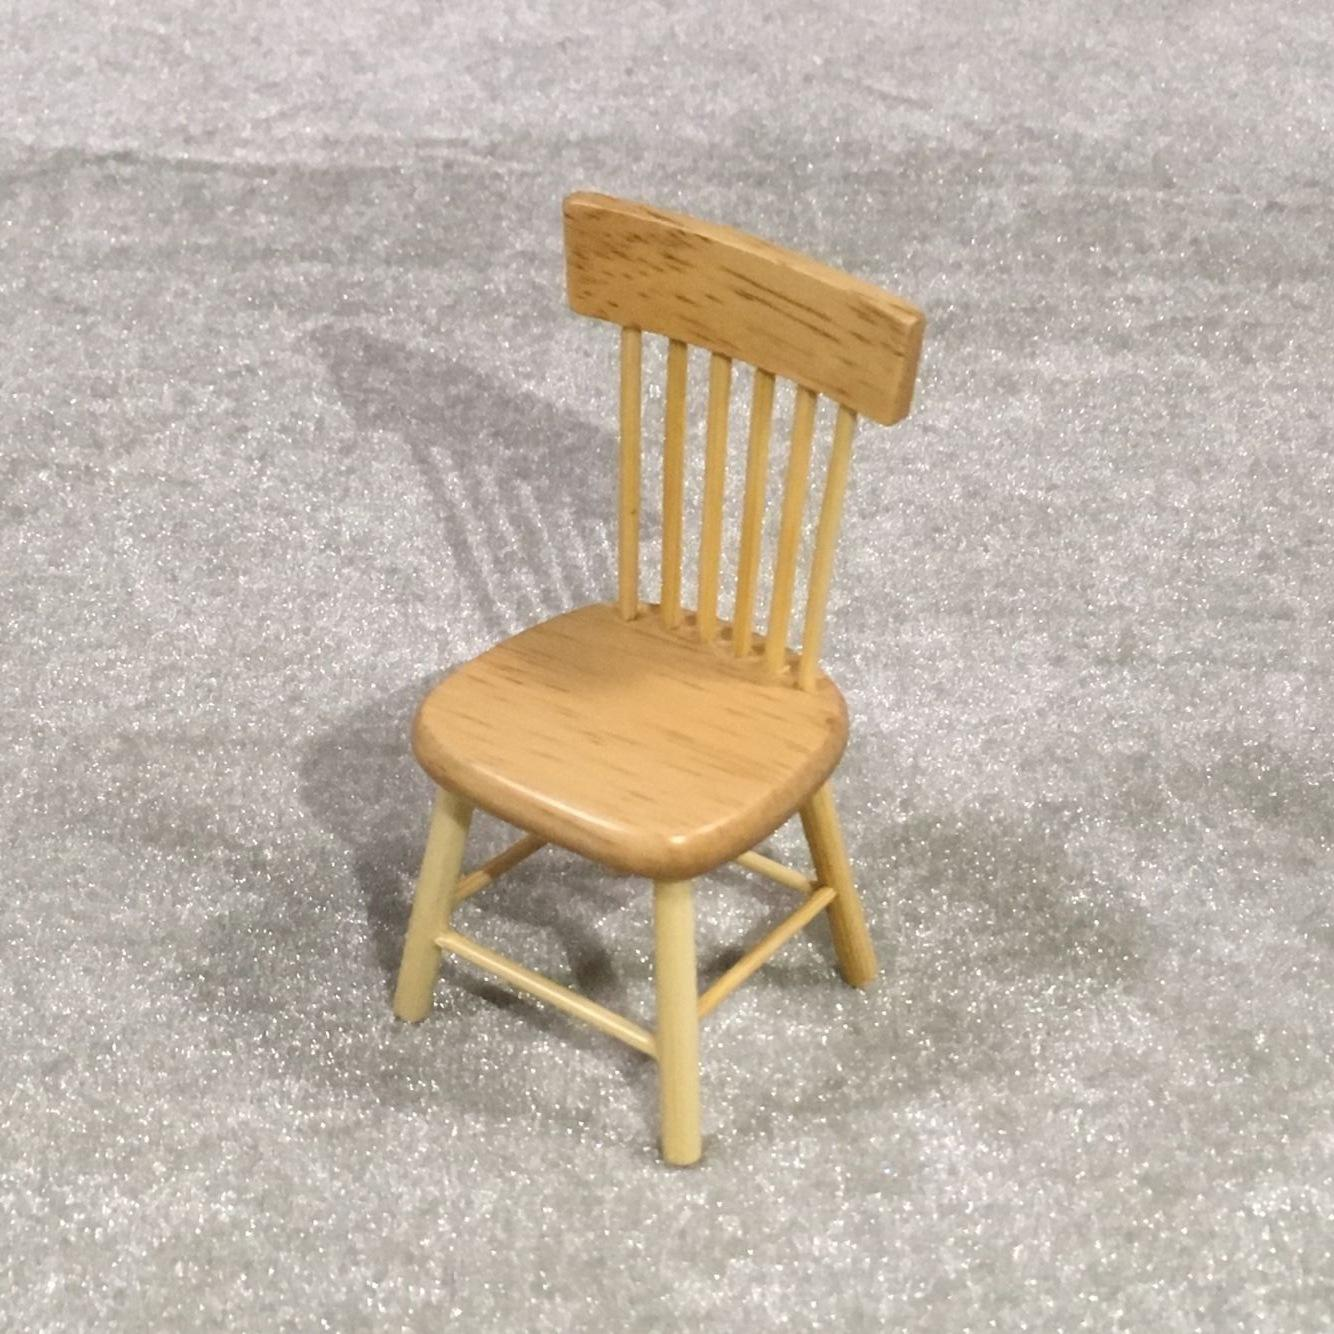 1/12 Dollhouse Miniature Dining Table Chair Wooden Furniture Set Wood Color